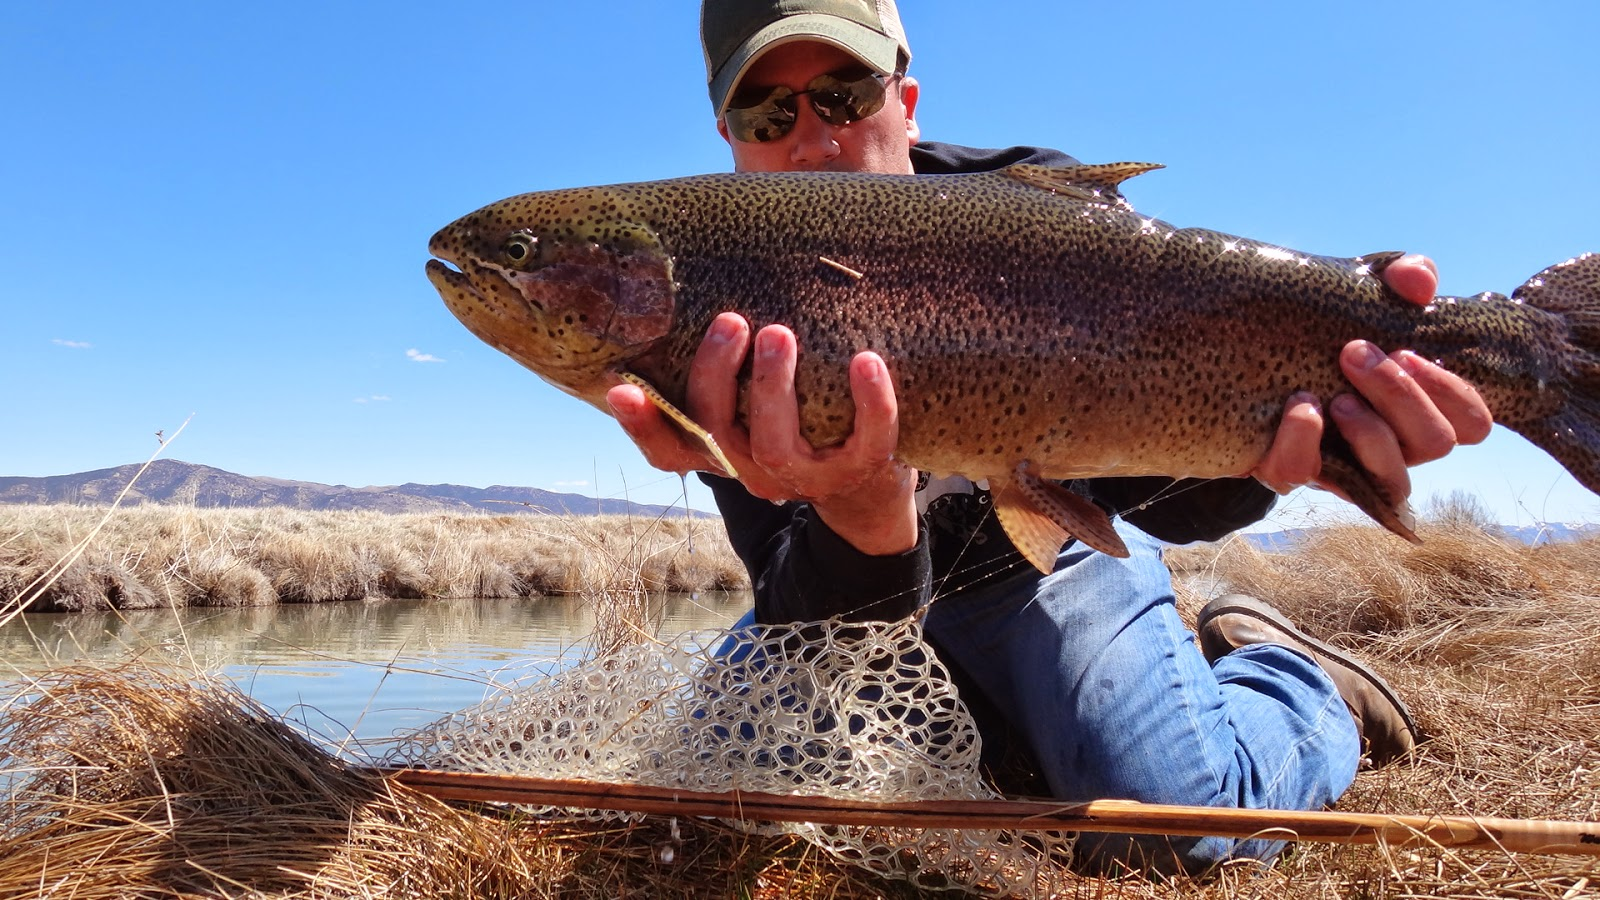 The fly syndicate fly fishing northern nevada the trifecta for Fly fishing nevada